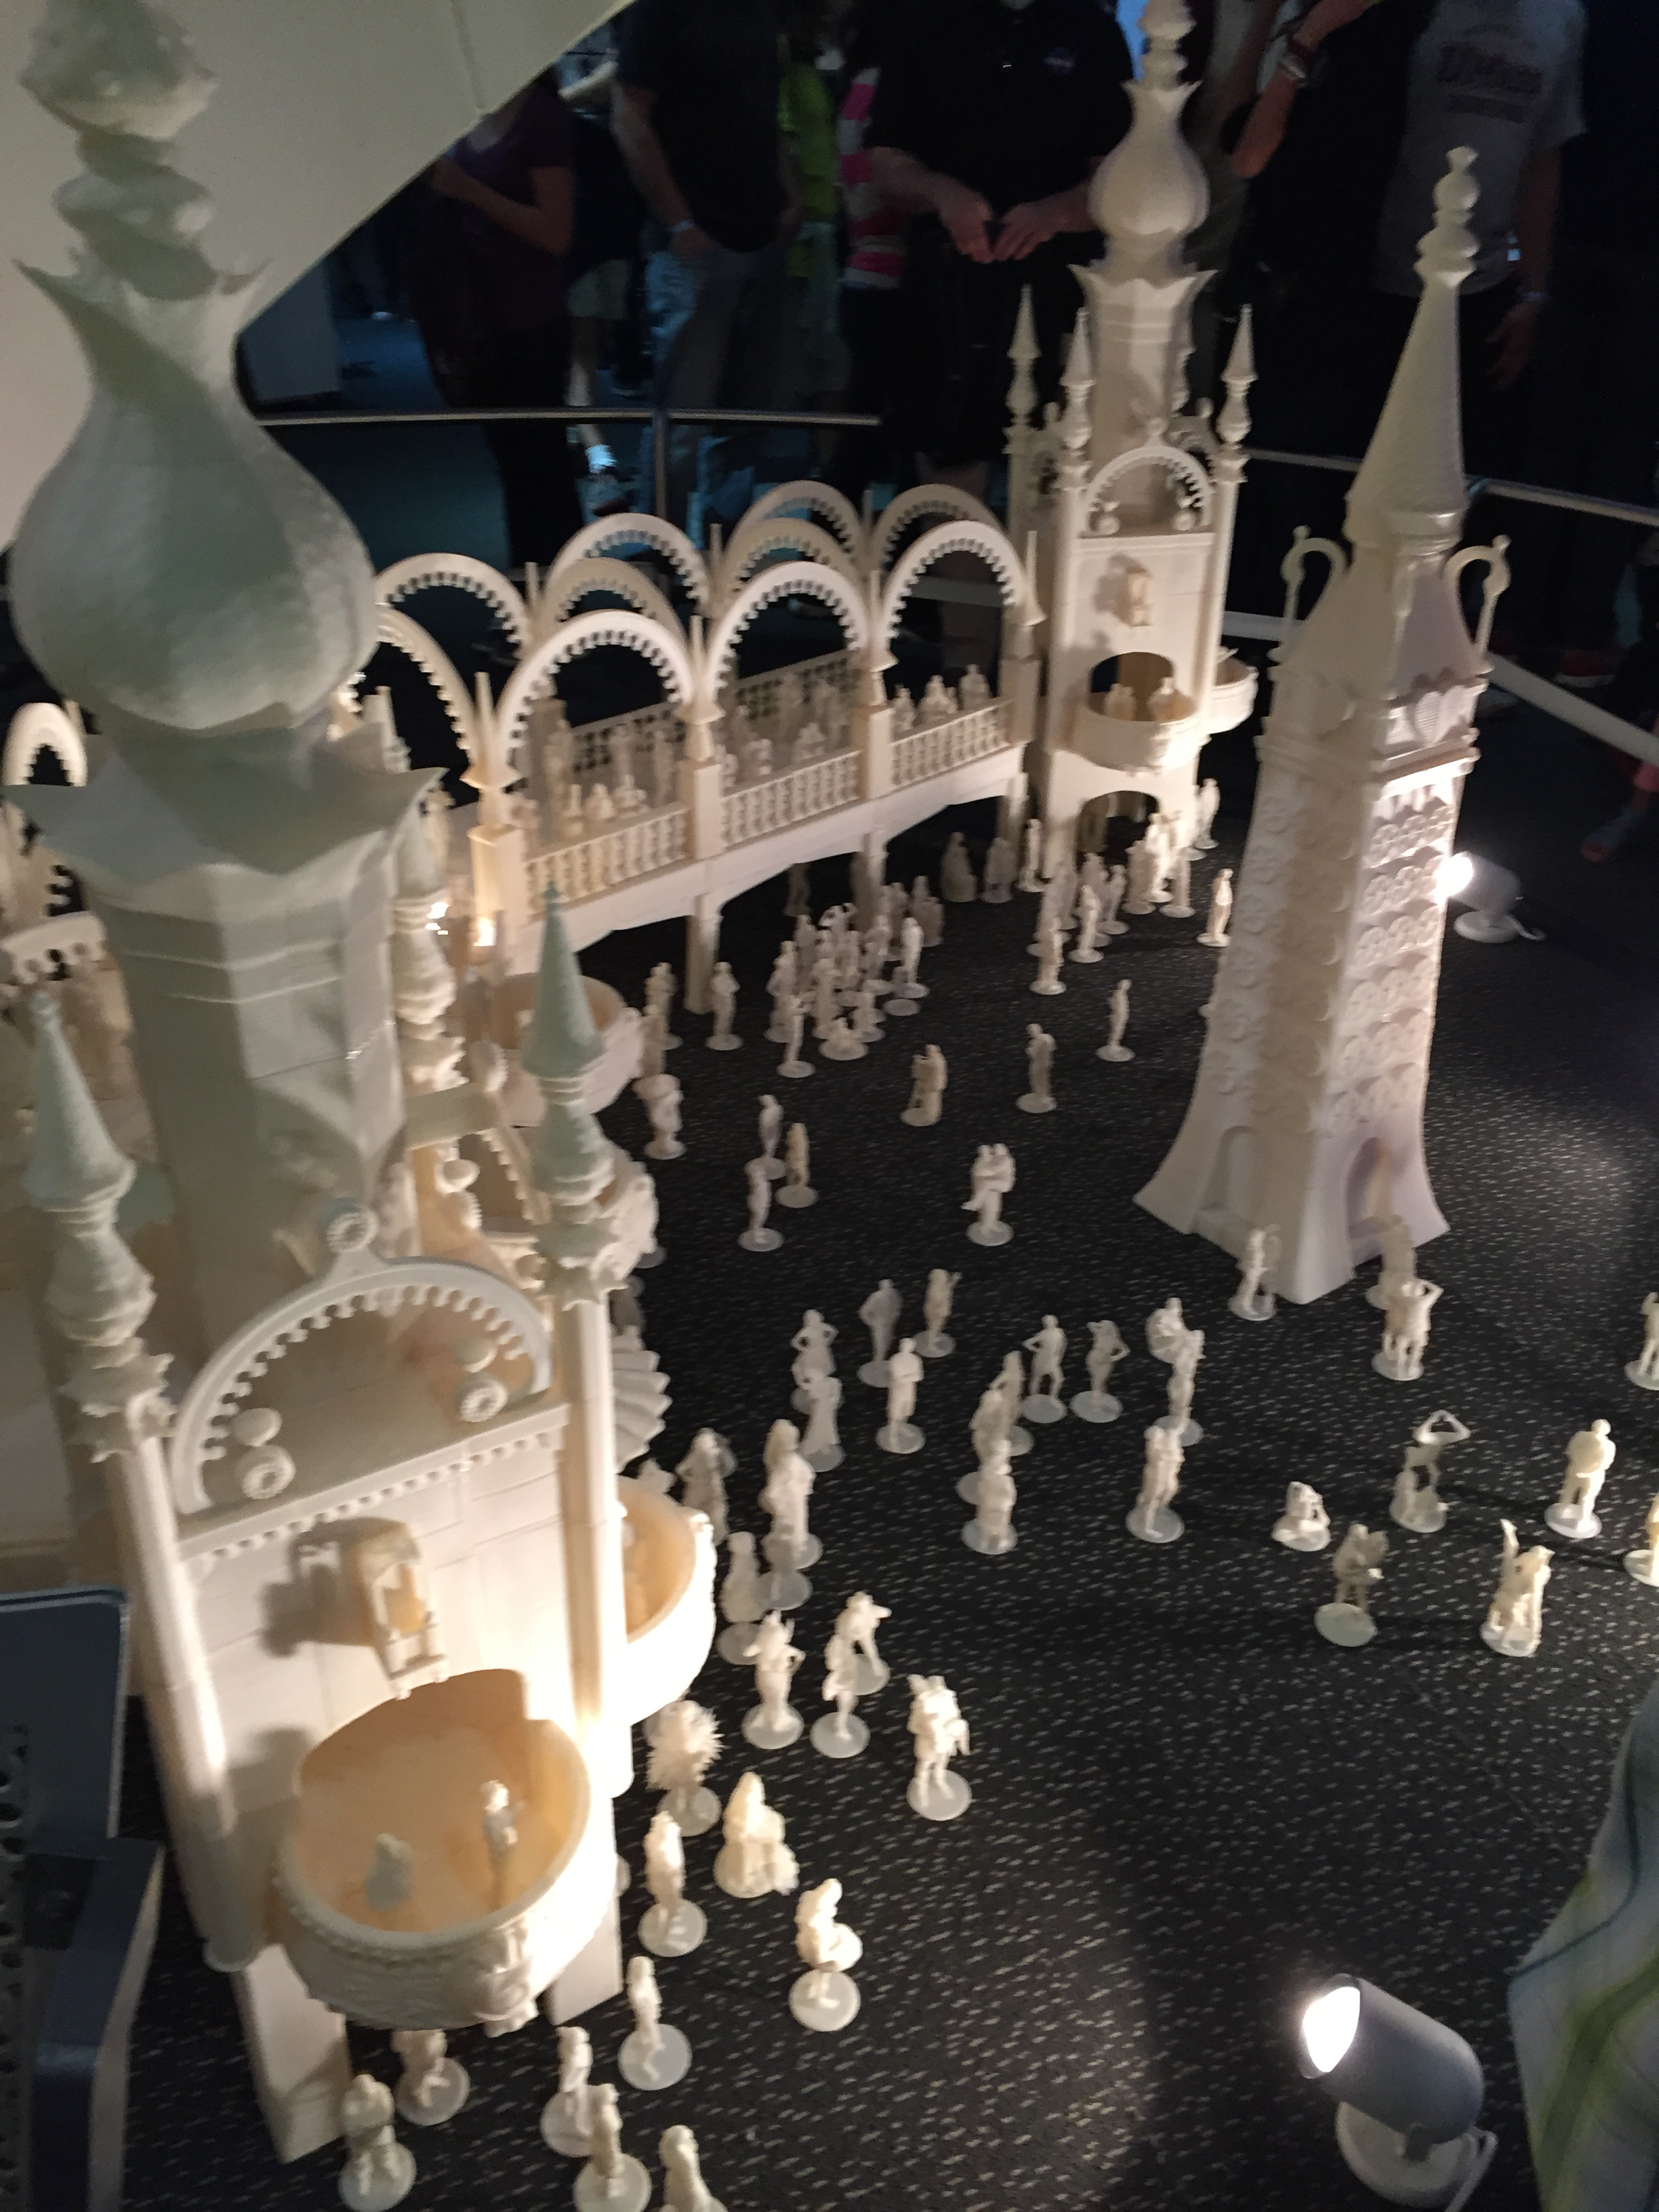 Some Meadowbrook 3D scans were included inthe Great Fredini's Coney Island display.